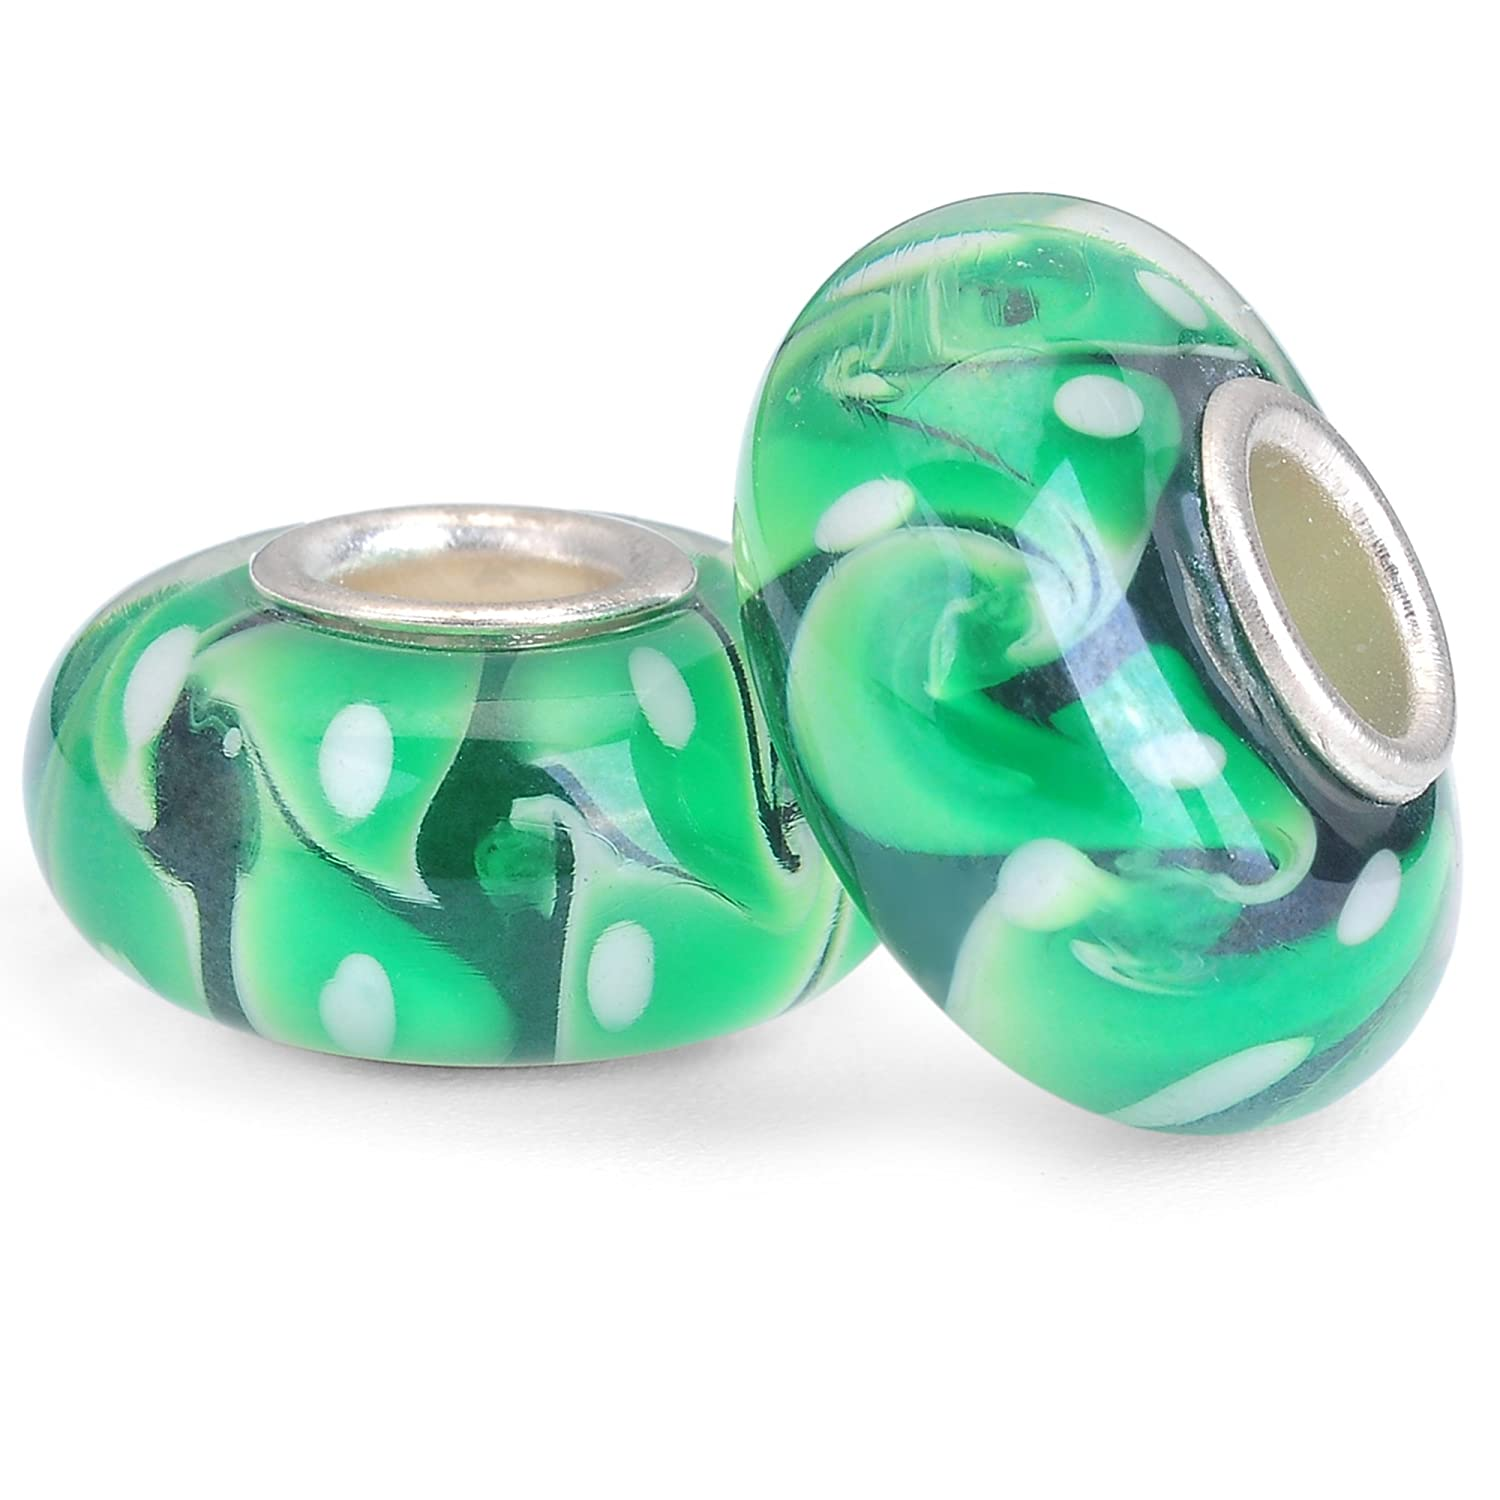 d76458041b79d RUBYCA Green Murano Glass Charm Beads Silver Color Core fit European  Bracelet for Jewelry Making 6pcs